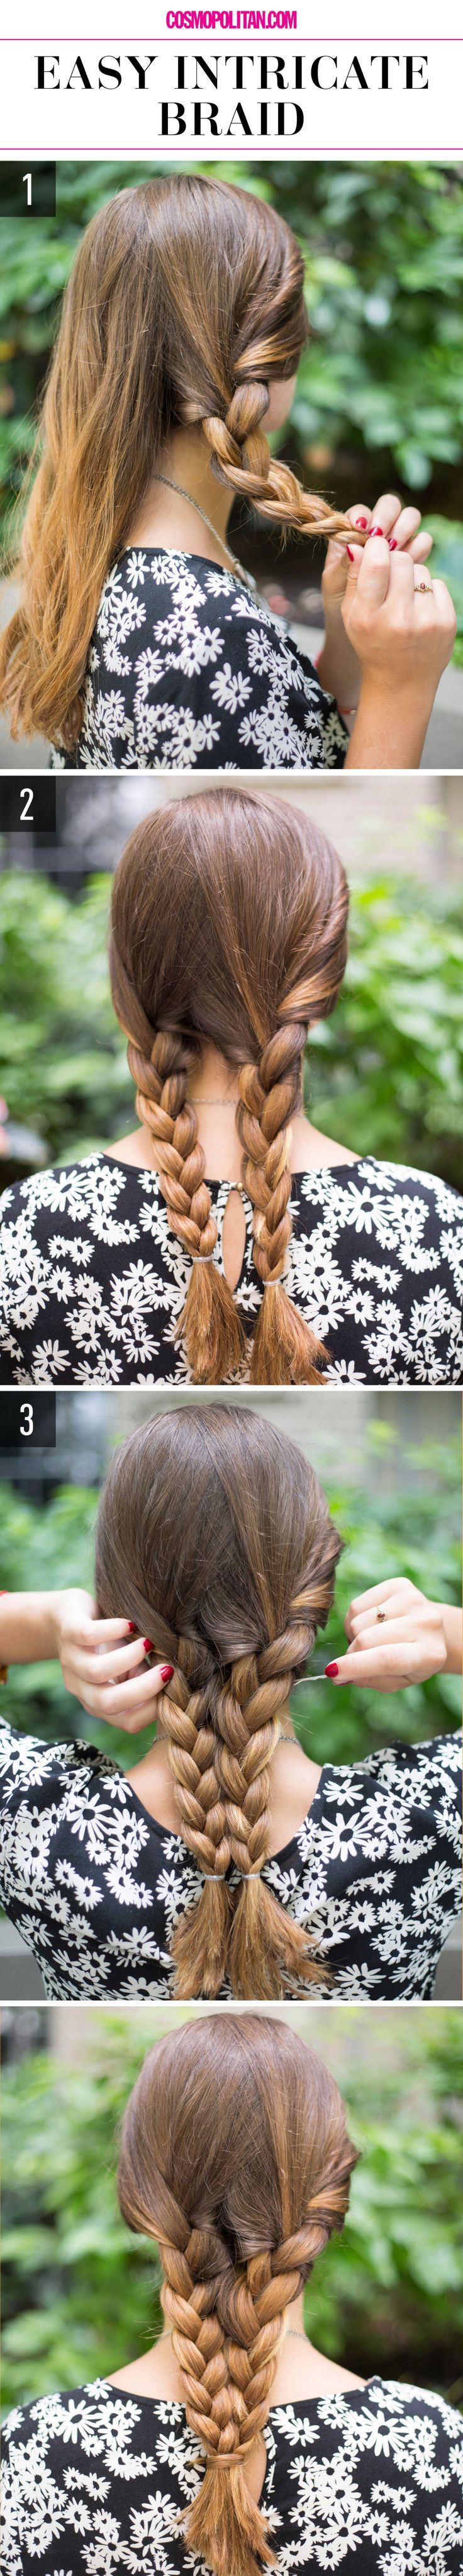 15 Super-Easy Hairstyles for Lazy Girls Who Can't Even: #15. Easy Intricate Braid